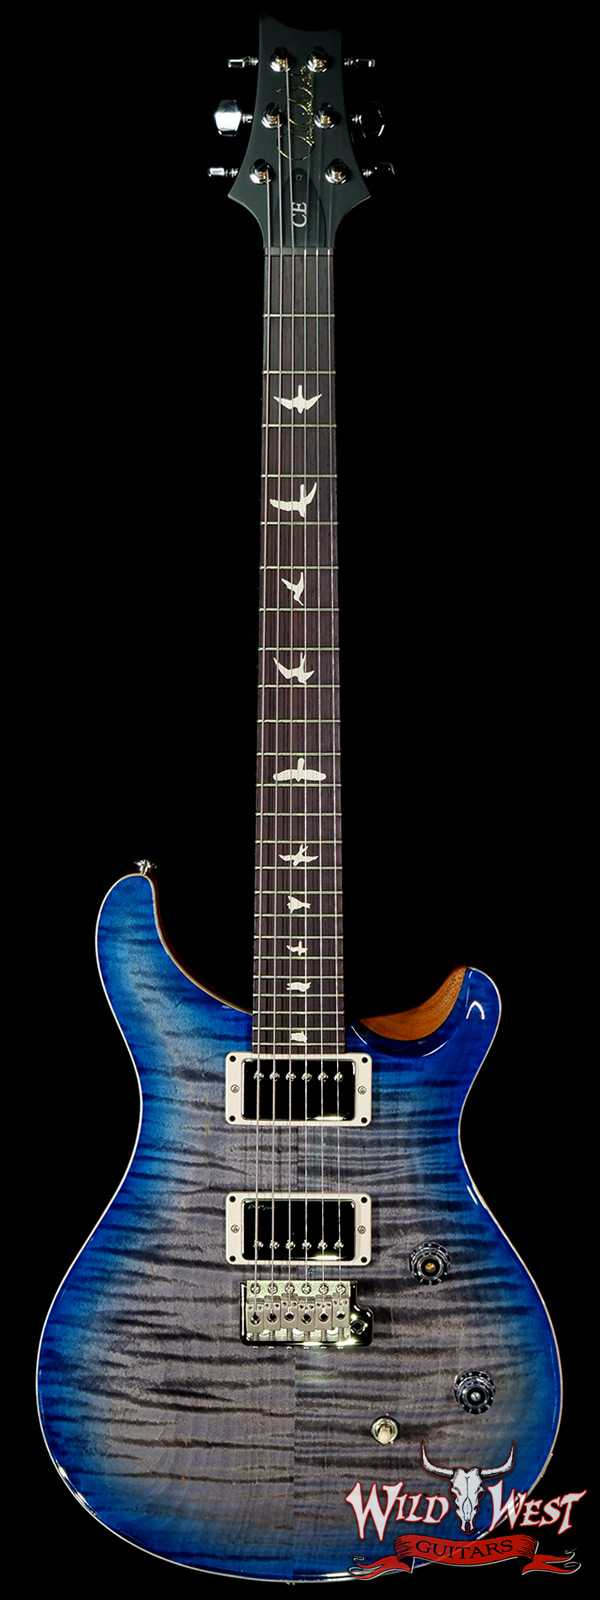 Paul Reed Smith PRS Wild West Guitars Special Run Flame Top Black Neck CE 24 Faded Grey Black Blue Burst 317888